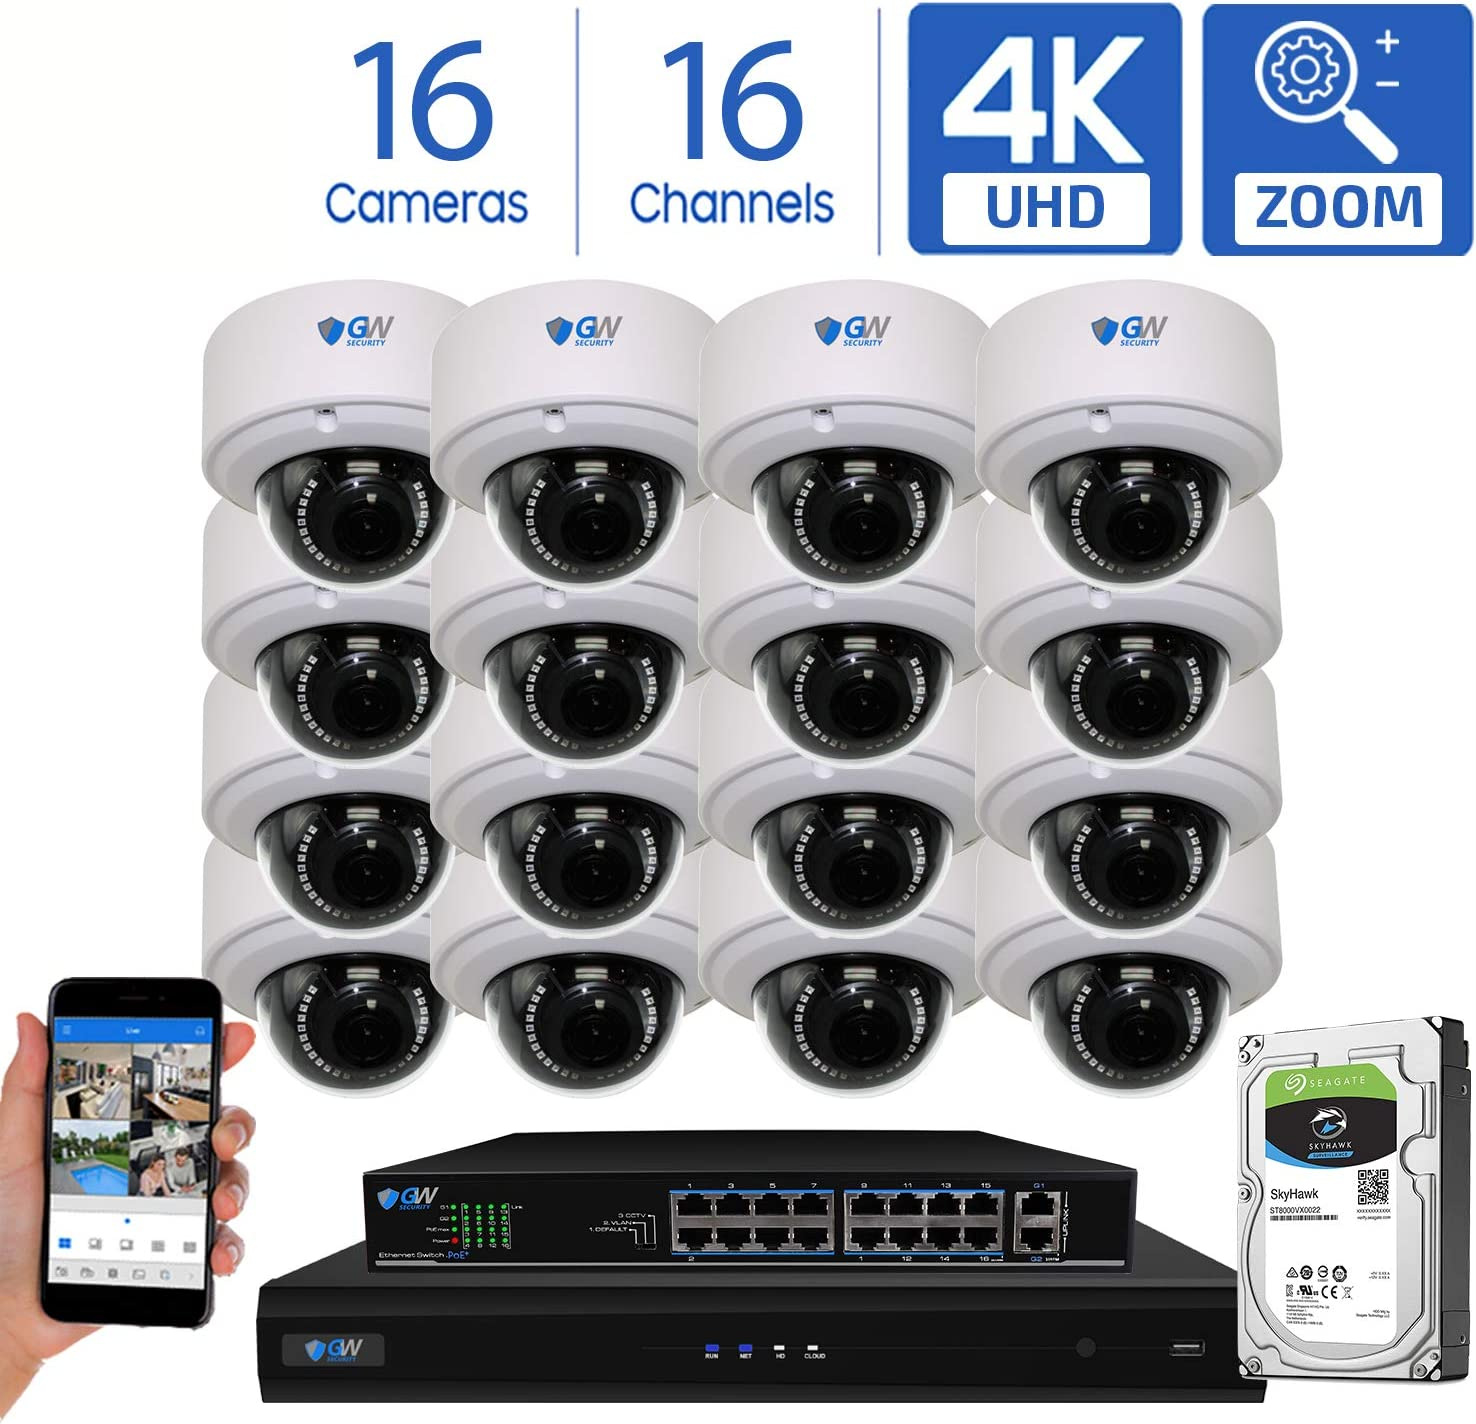 GW Security AutoFocus 4K 8MP IP Camera System, 16 Channel H.265 4K NVR, 16 x 8MP UltraHD 3840×2160 Dome POE Security Camera 4X Optical Motorized Zoom Outdoor Indoor